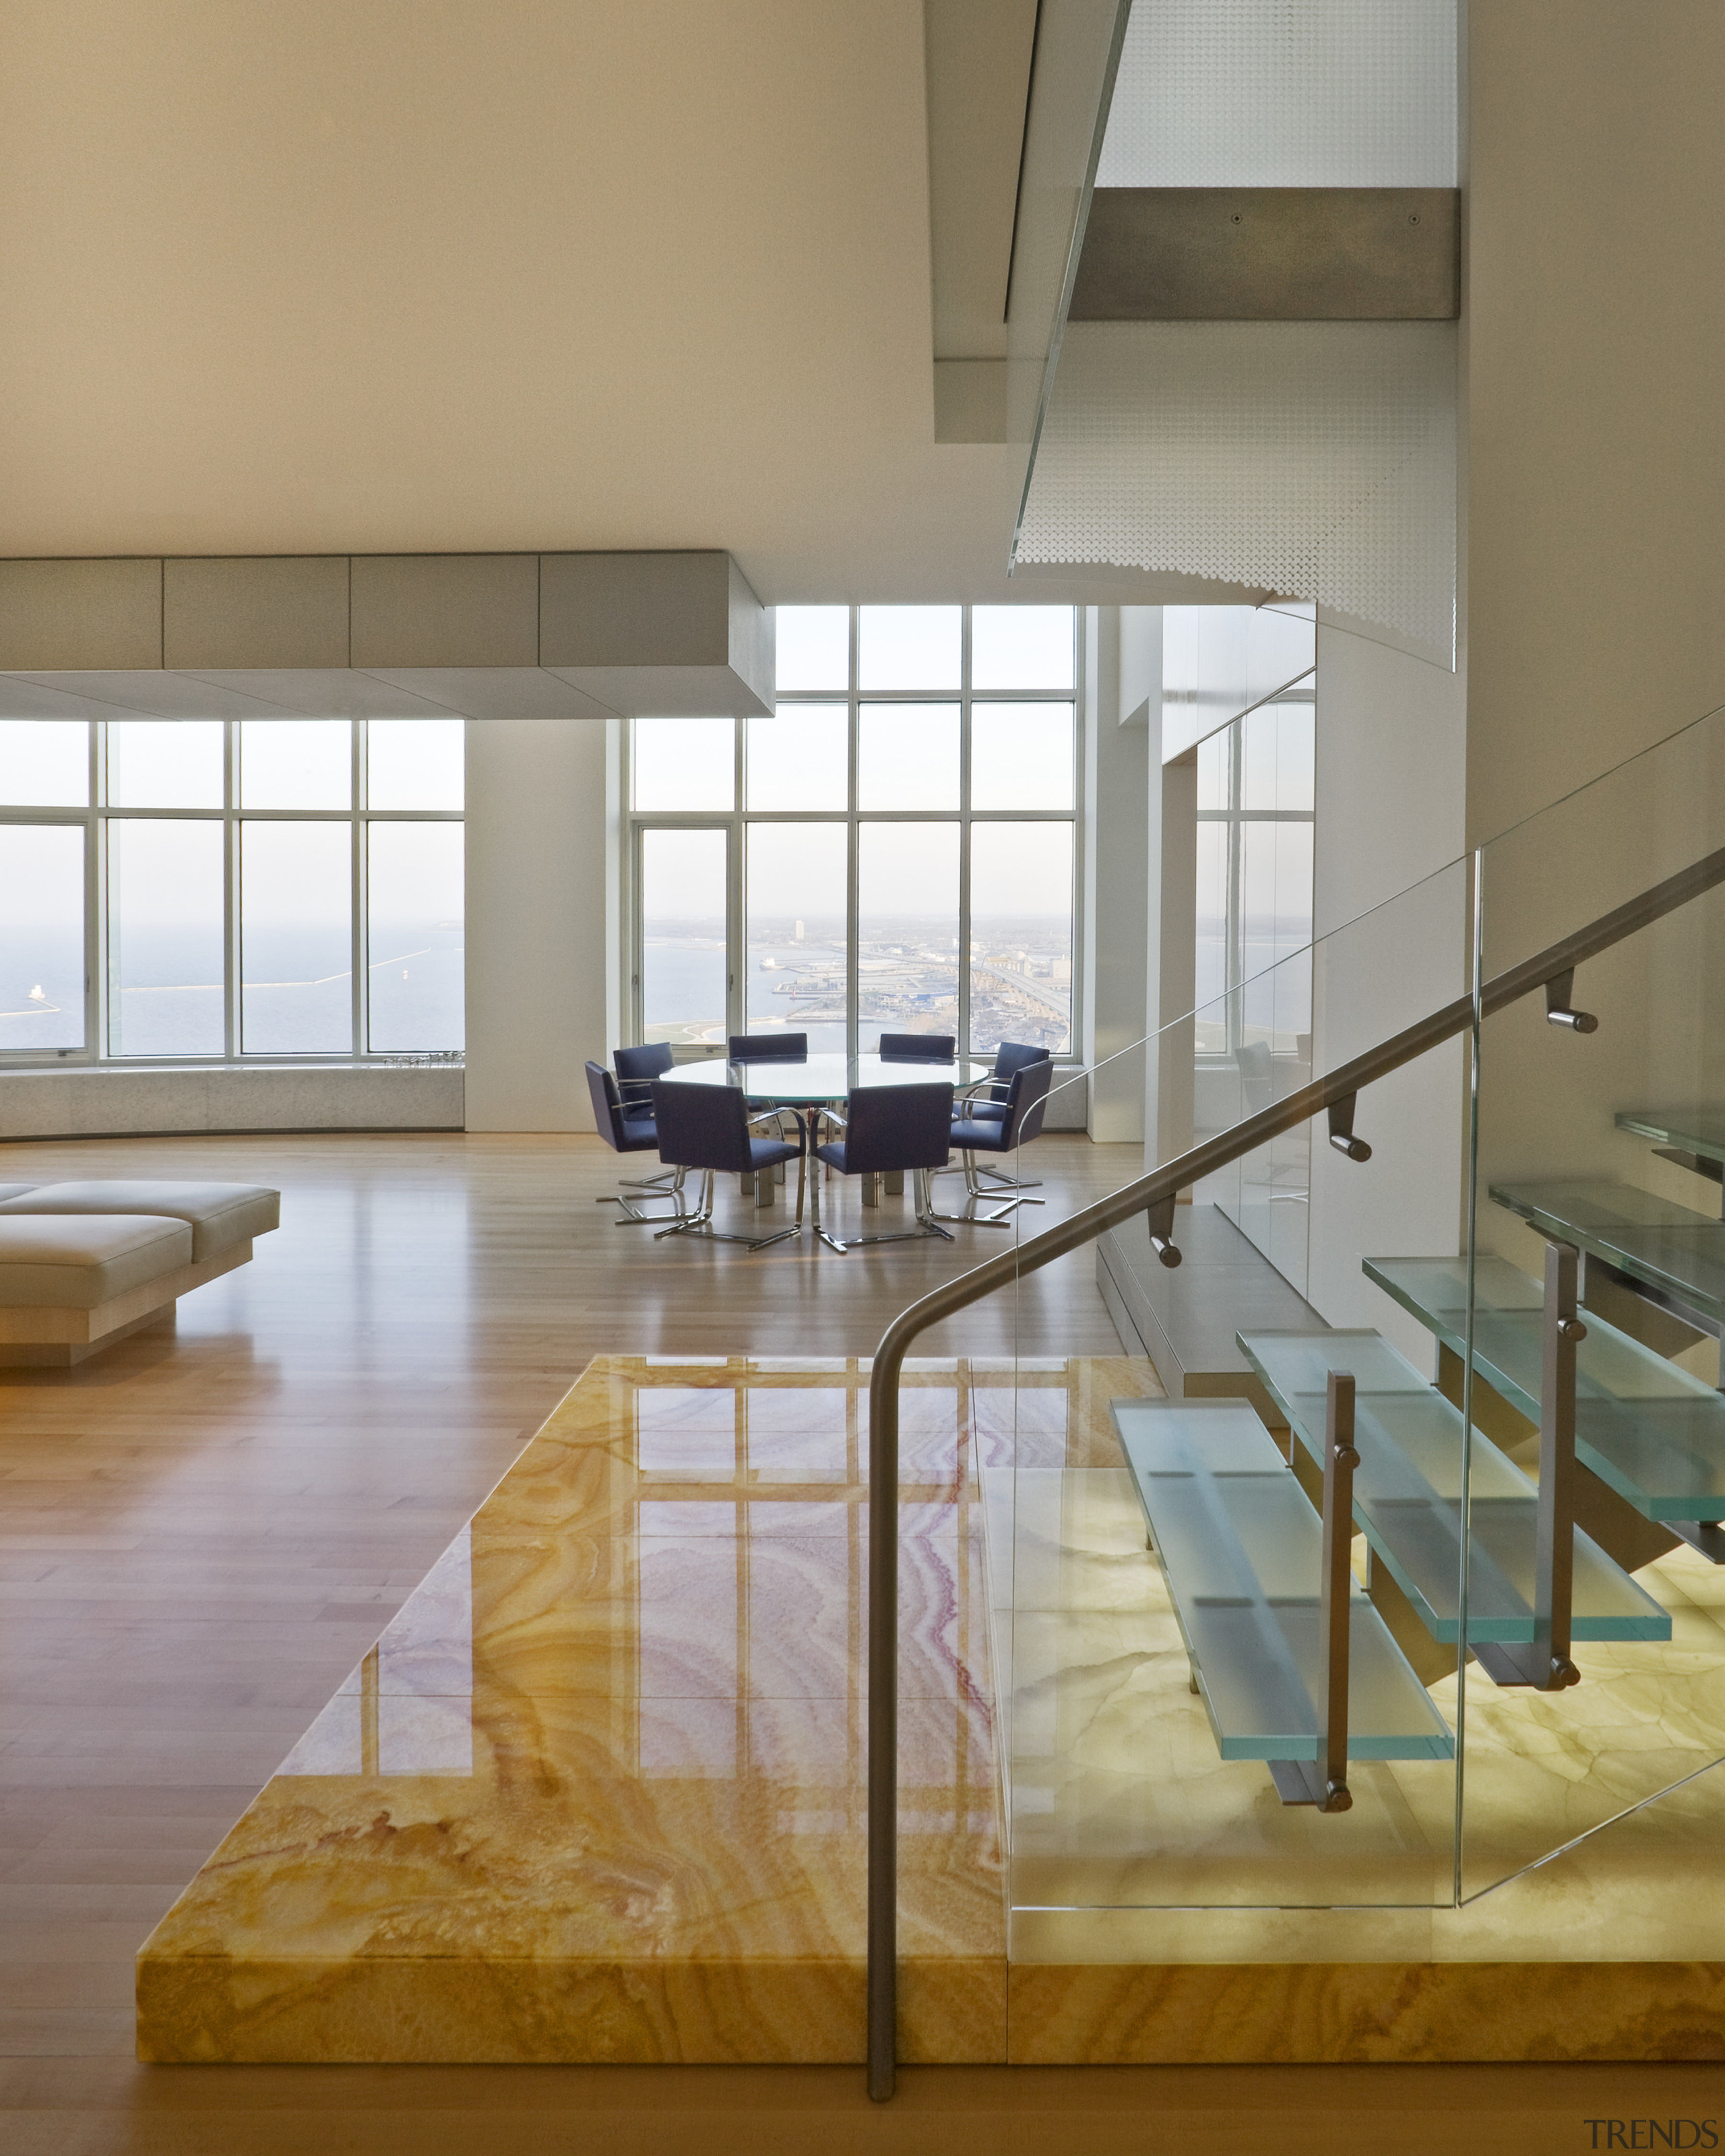 View of penthouse with white walls and a architecture, chair, daylighting, floor, flooring, furniture, glass, handrail, hardwood, interior design, loft, table, window, gray, brown